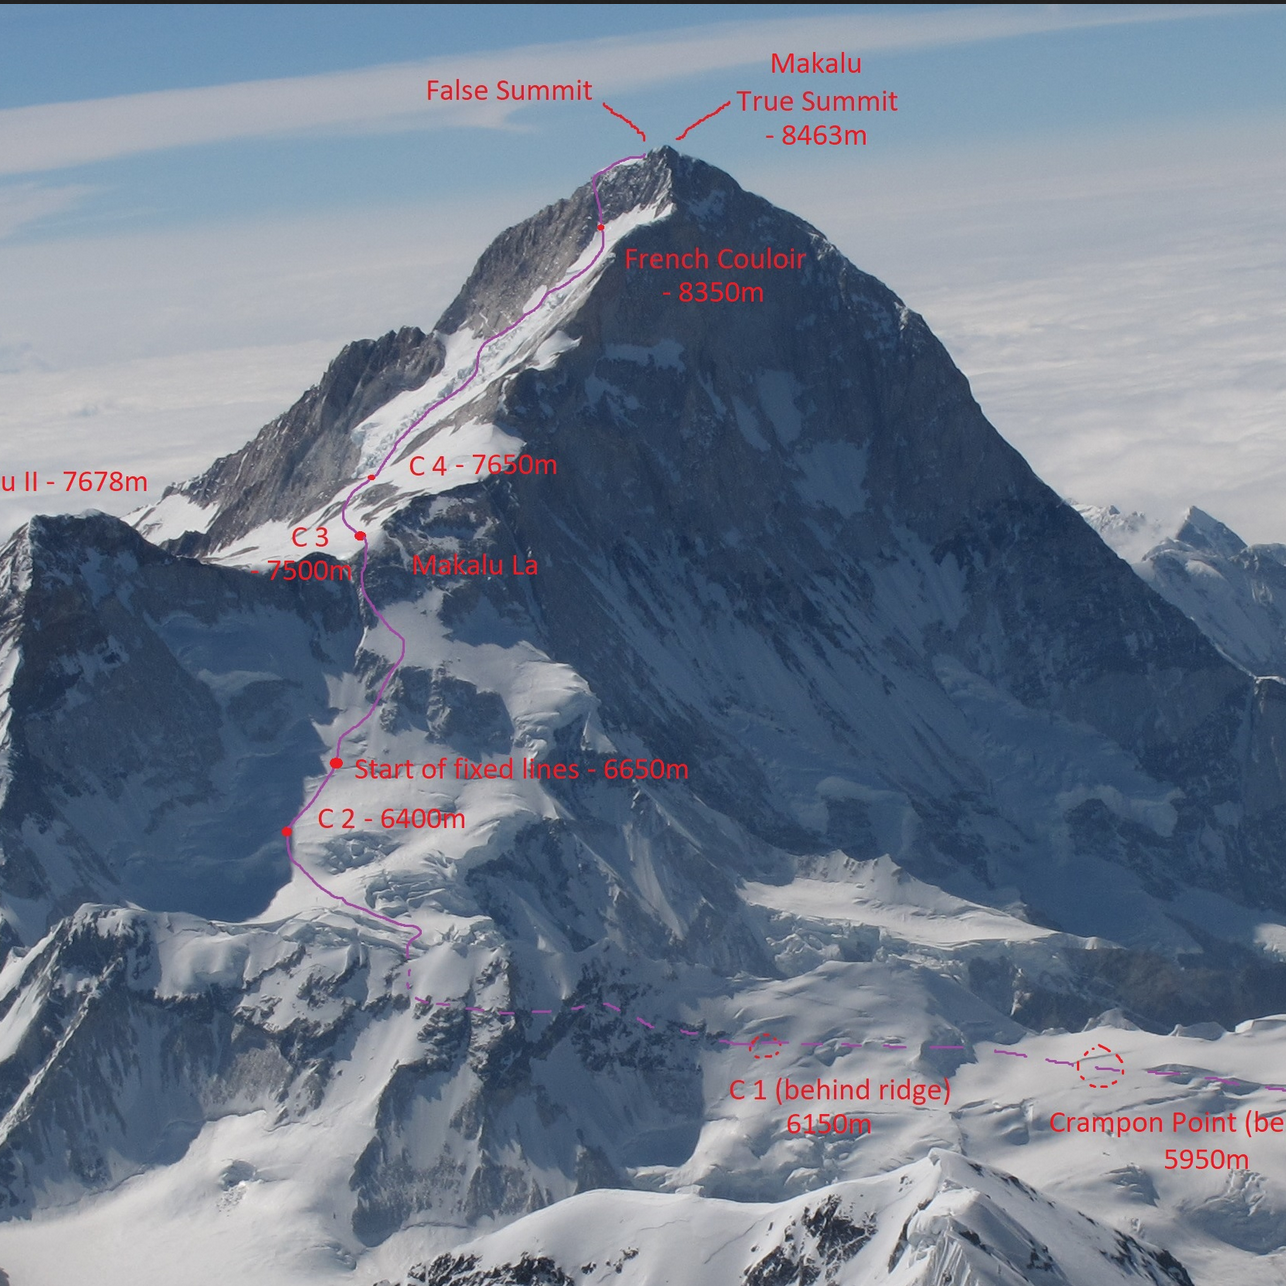 Makalu expedition climb | 8,463m with Andrew Lock